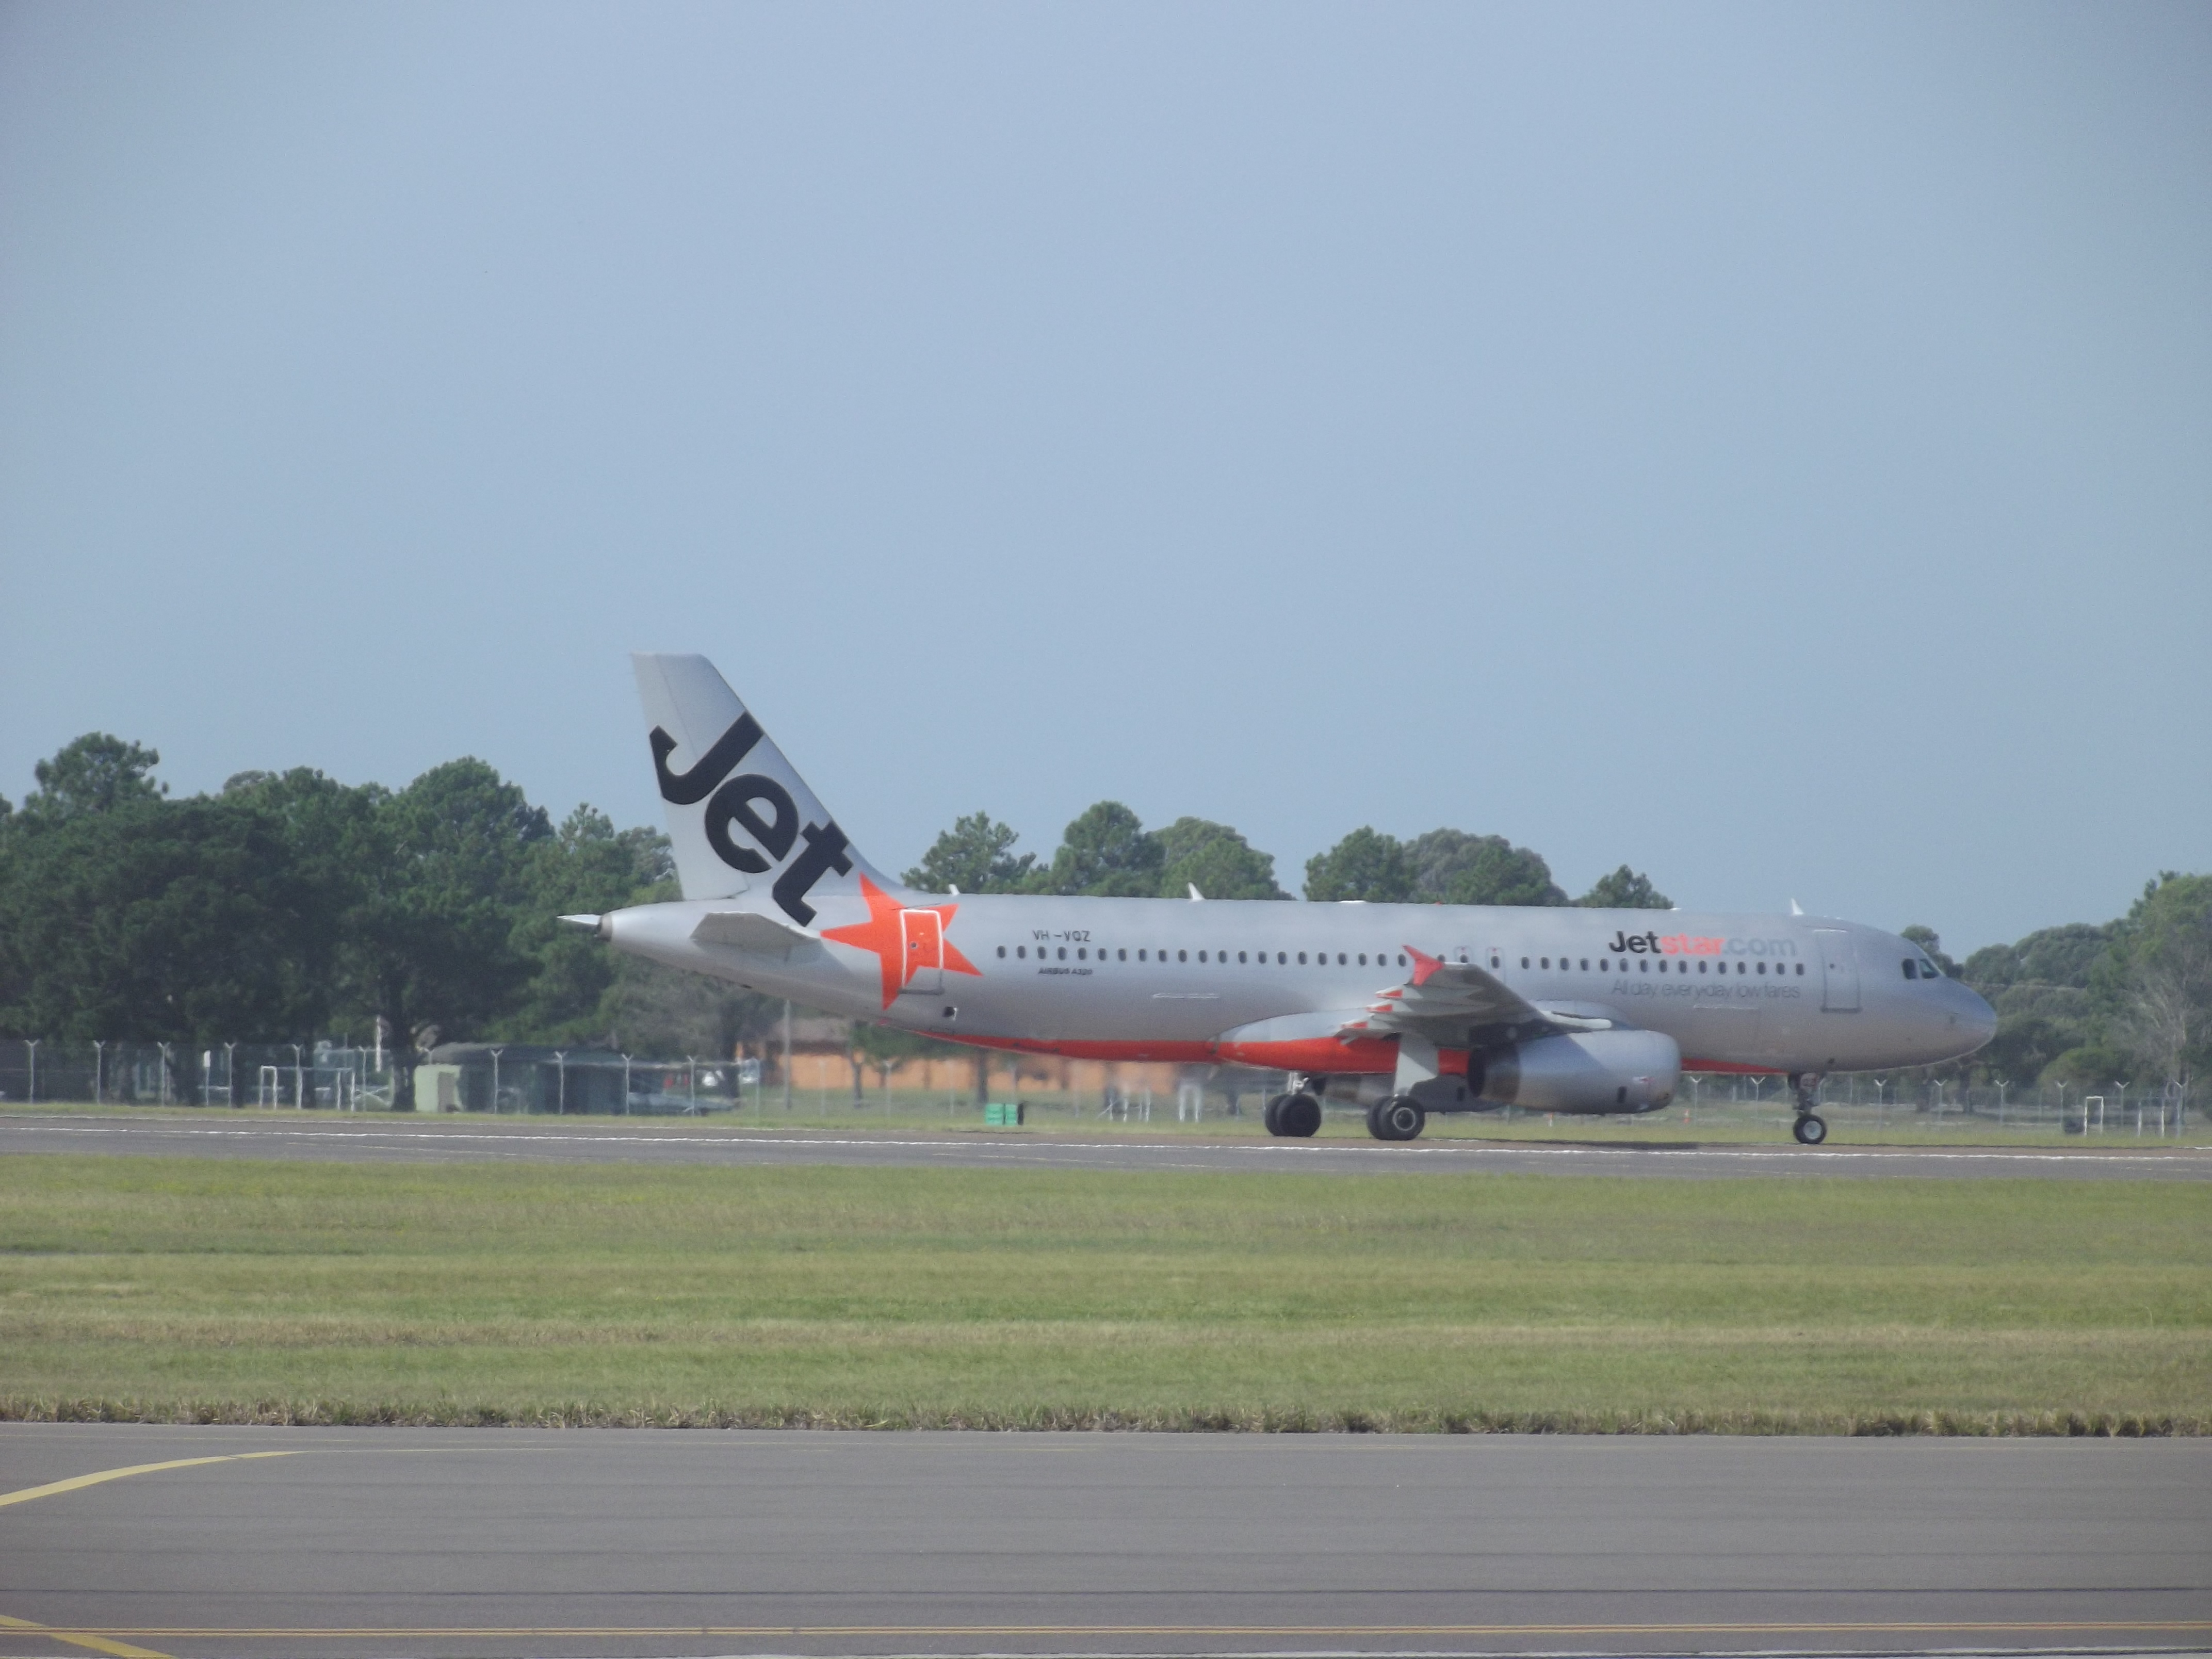 jetstar flights - photo #12